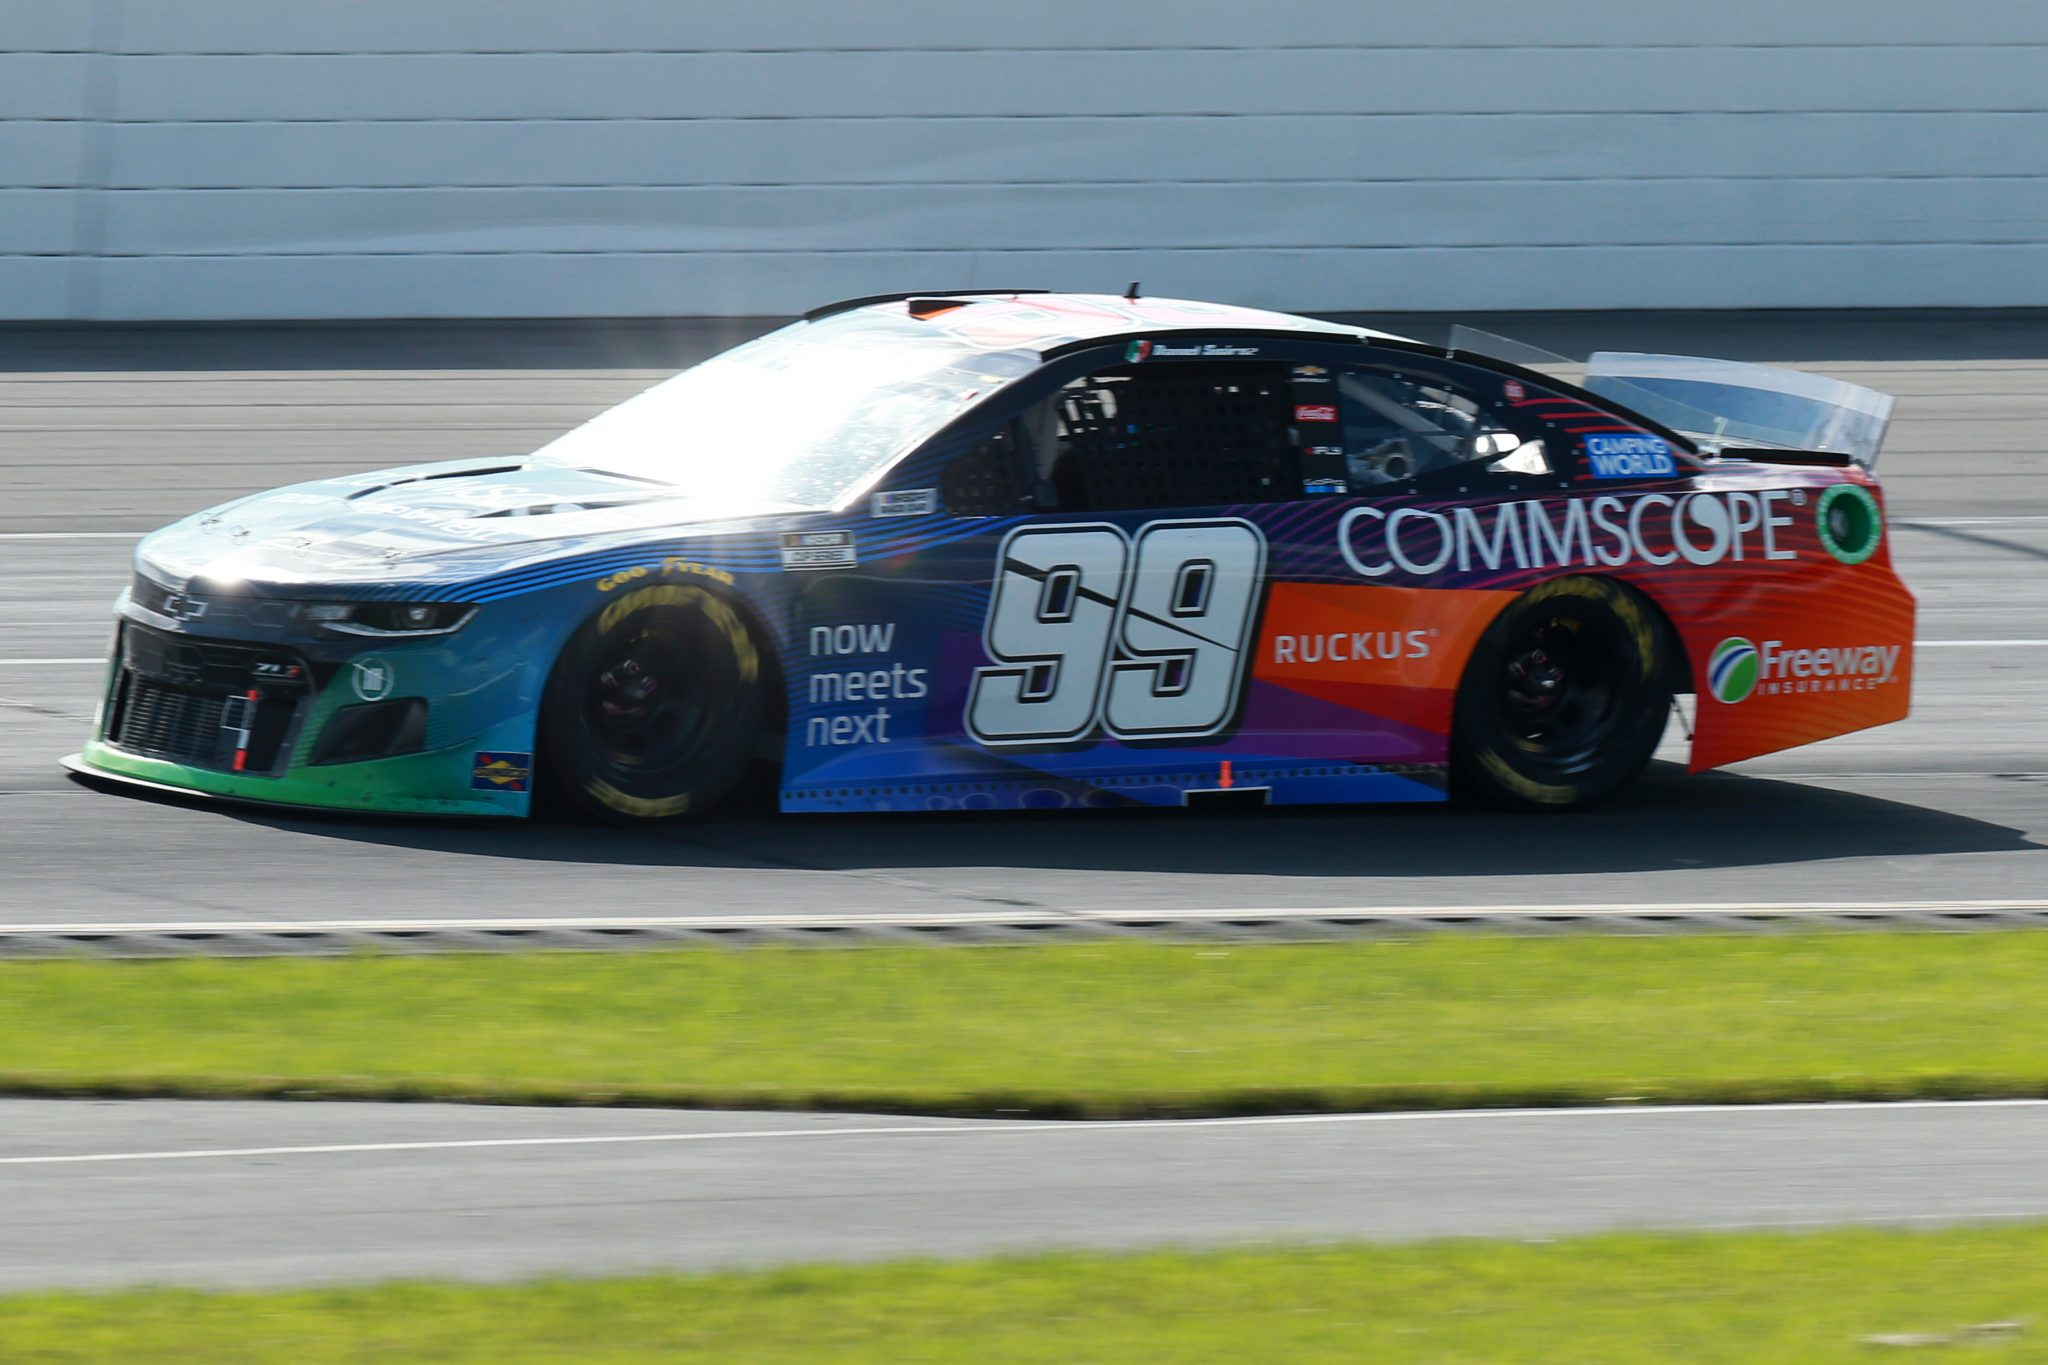 LONG POND, PENNSYLVANIA - JUNE 27: Daniel Suarez, driver of the #99 CommScope Chevrolet, drives during the NASCAR Cup Series Explore the Pocono Mountains 350 at Pocono Raceway on June 27, 2021 in Long Pond, Pennsylvania. (Photo by Sean Gardner/Getty Images) | Getty Images